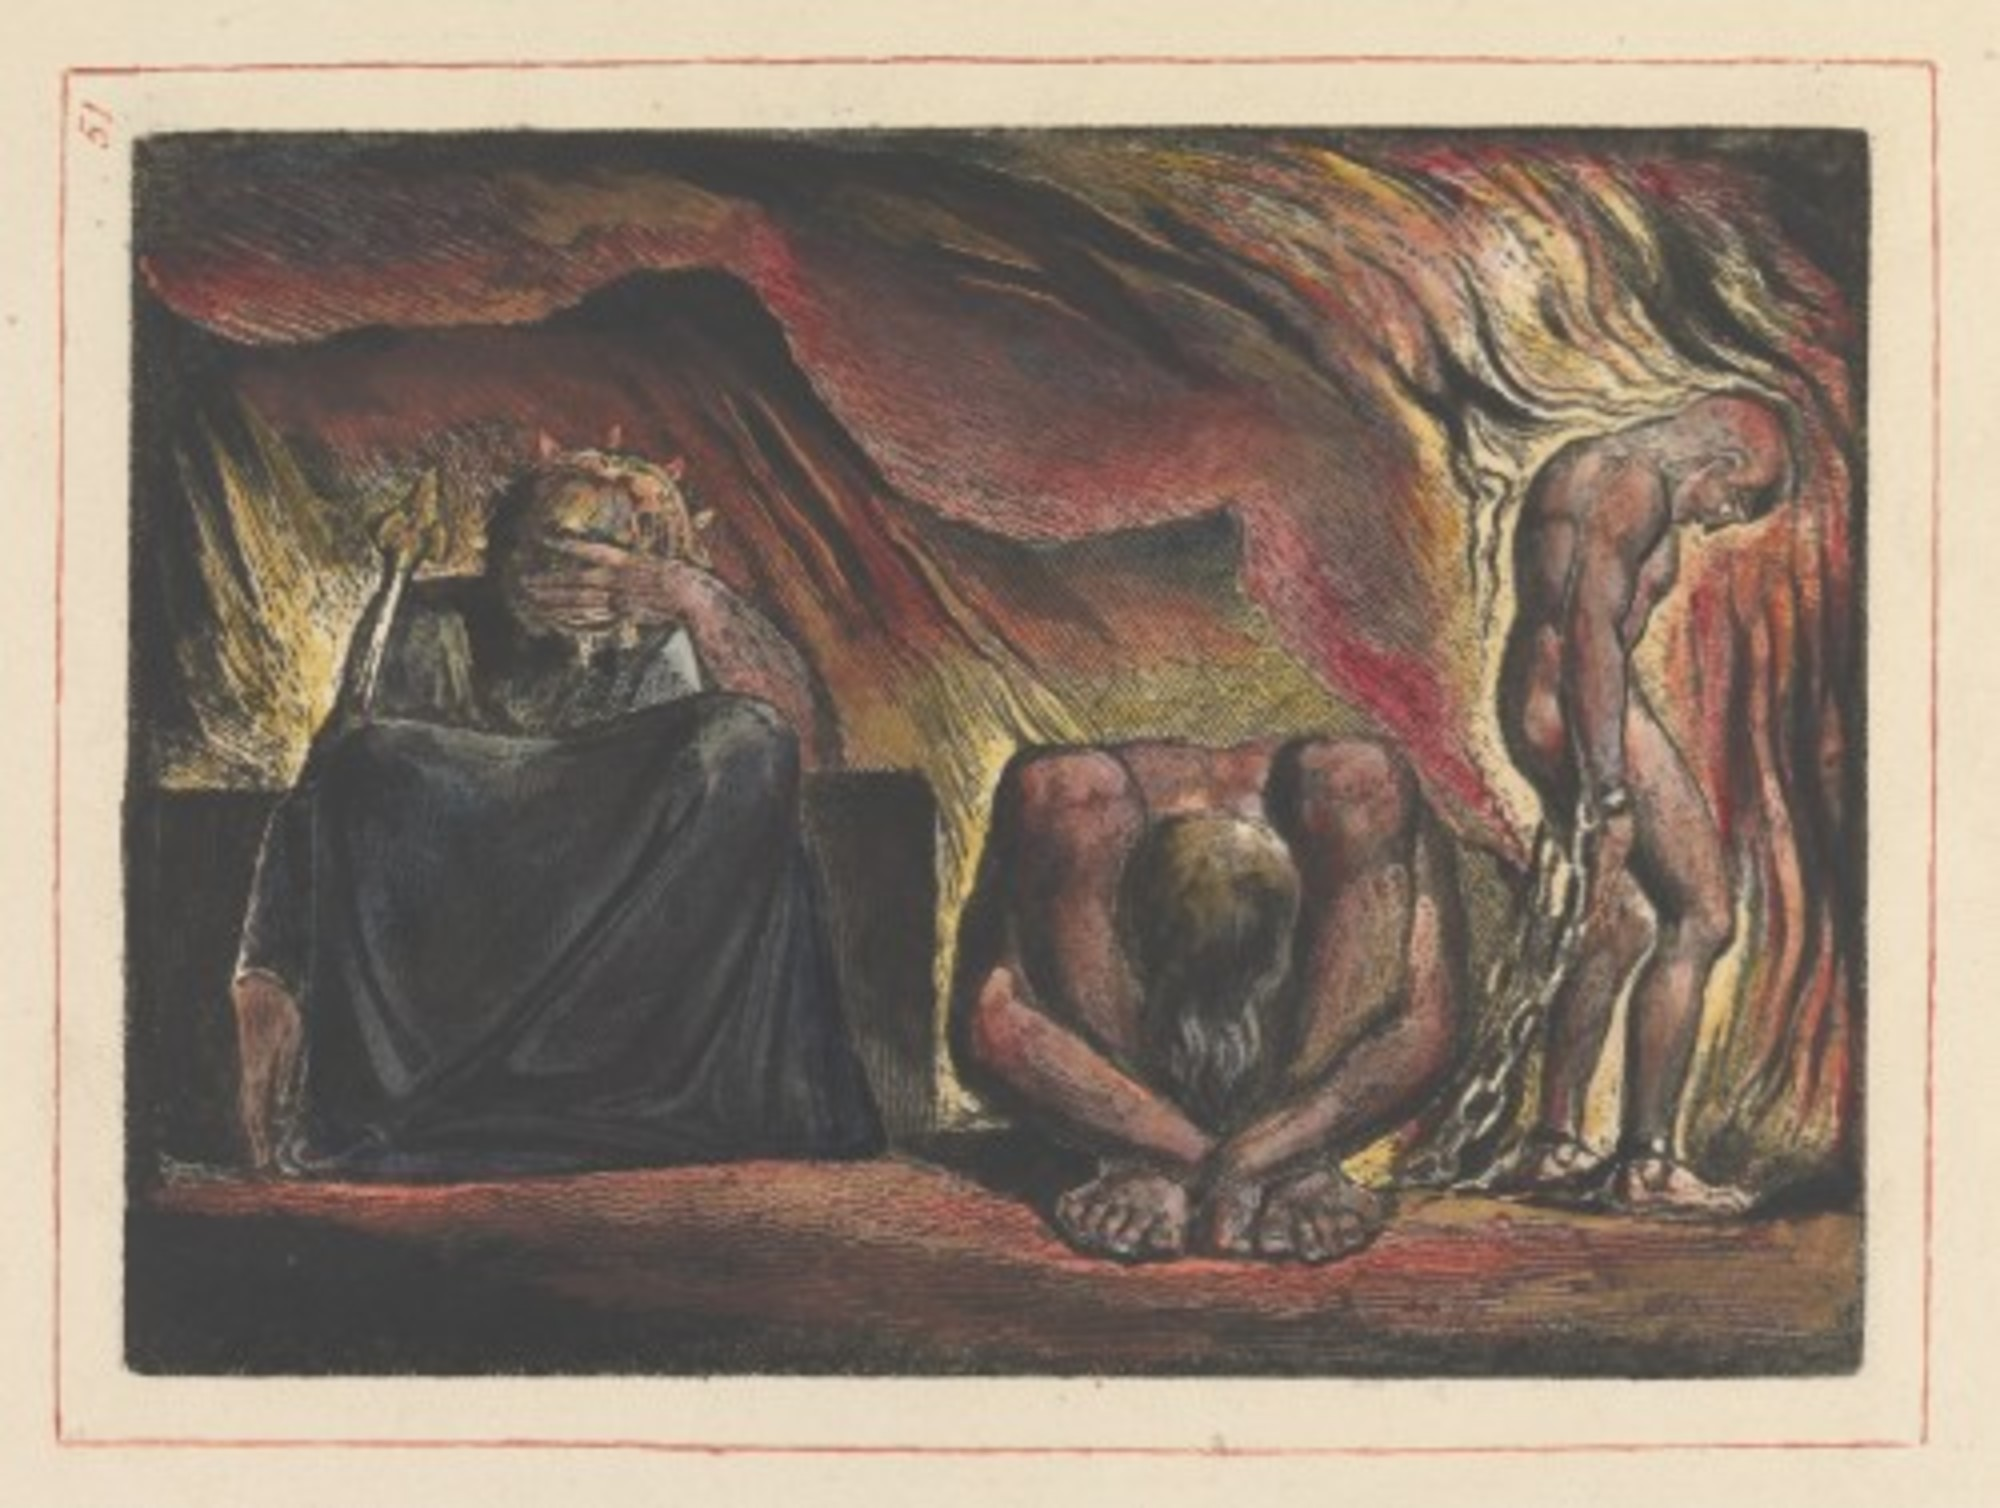 William_Blake_-_Jerusalem_Plate_51_-_Google_Art_Project.jpg